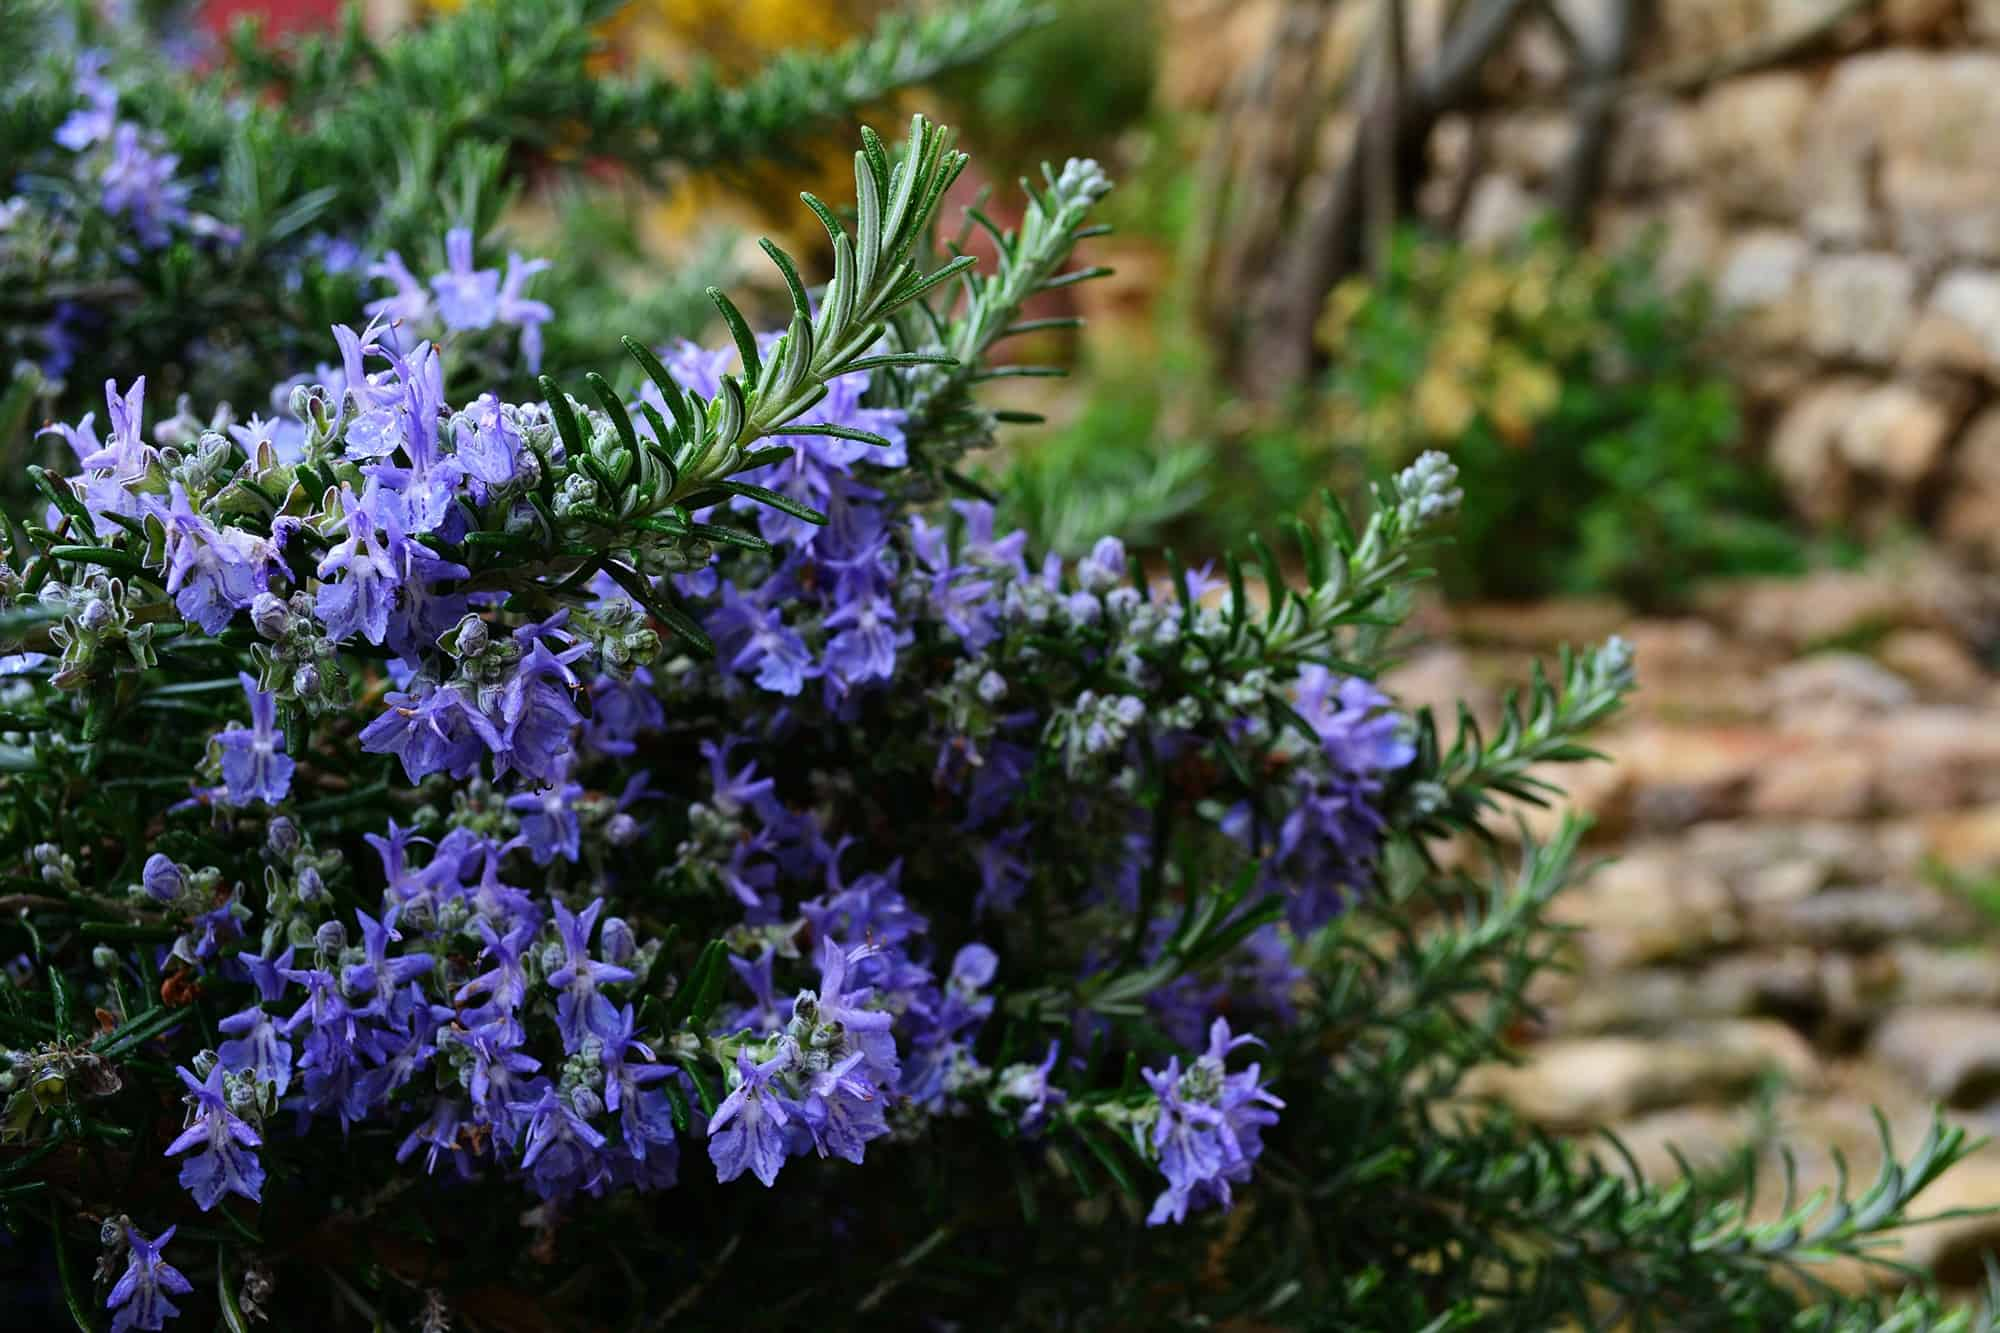 Blue flowers rosemary bush plantscapers blue flowers rosemary bush izmirmasajfo